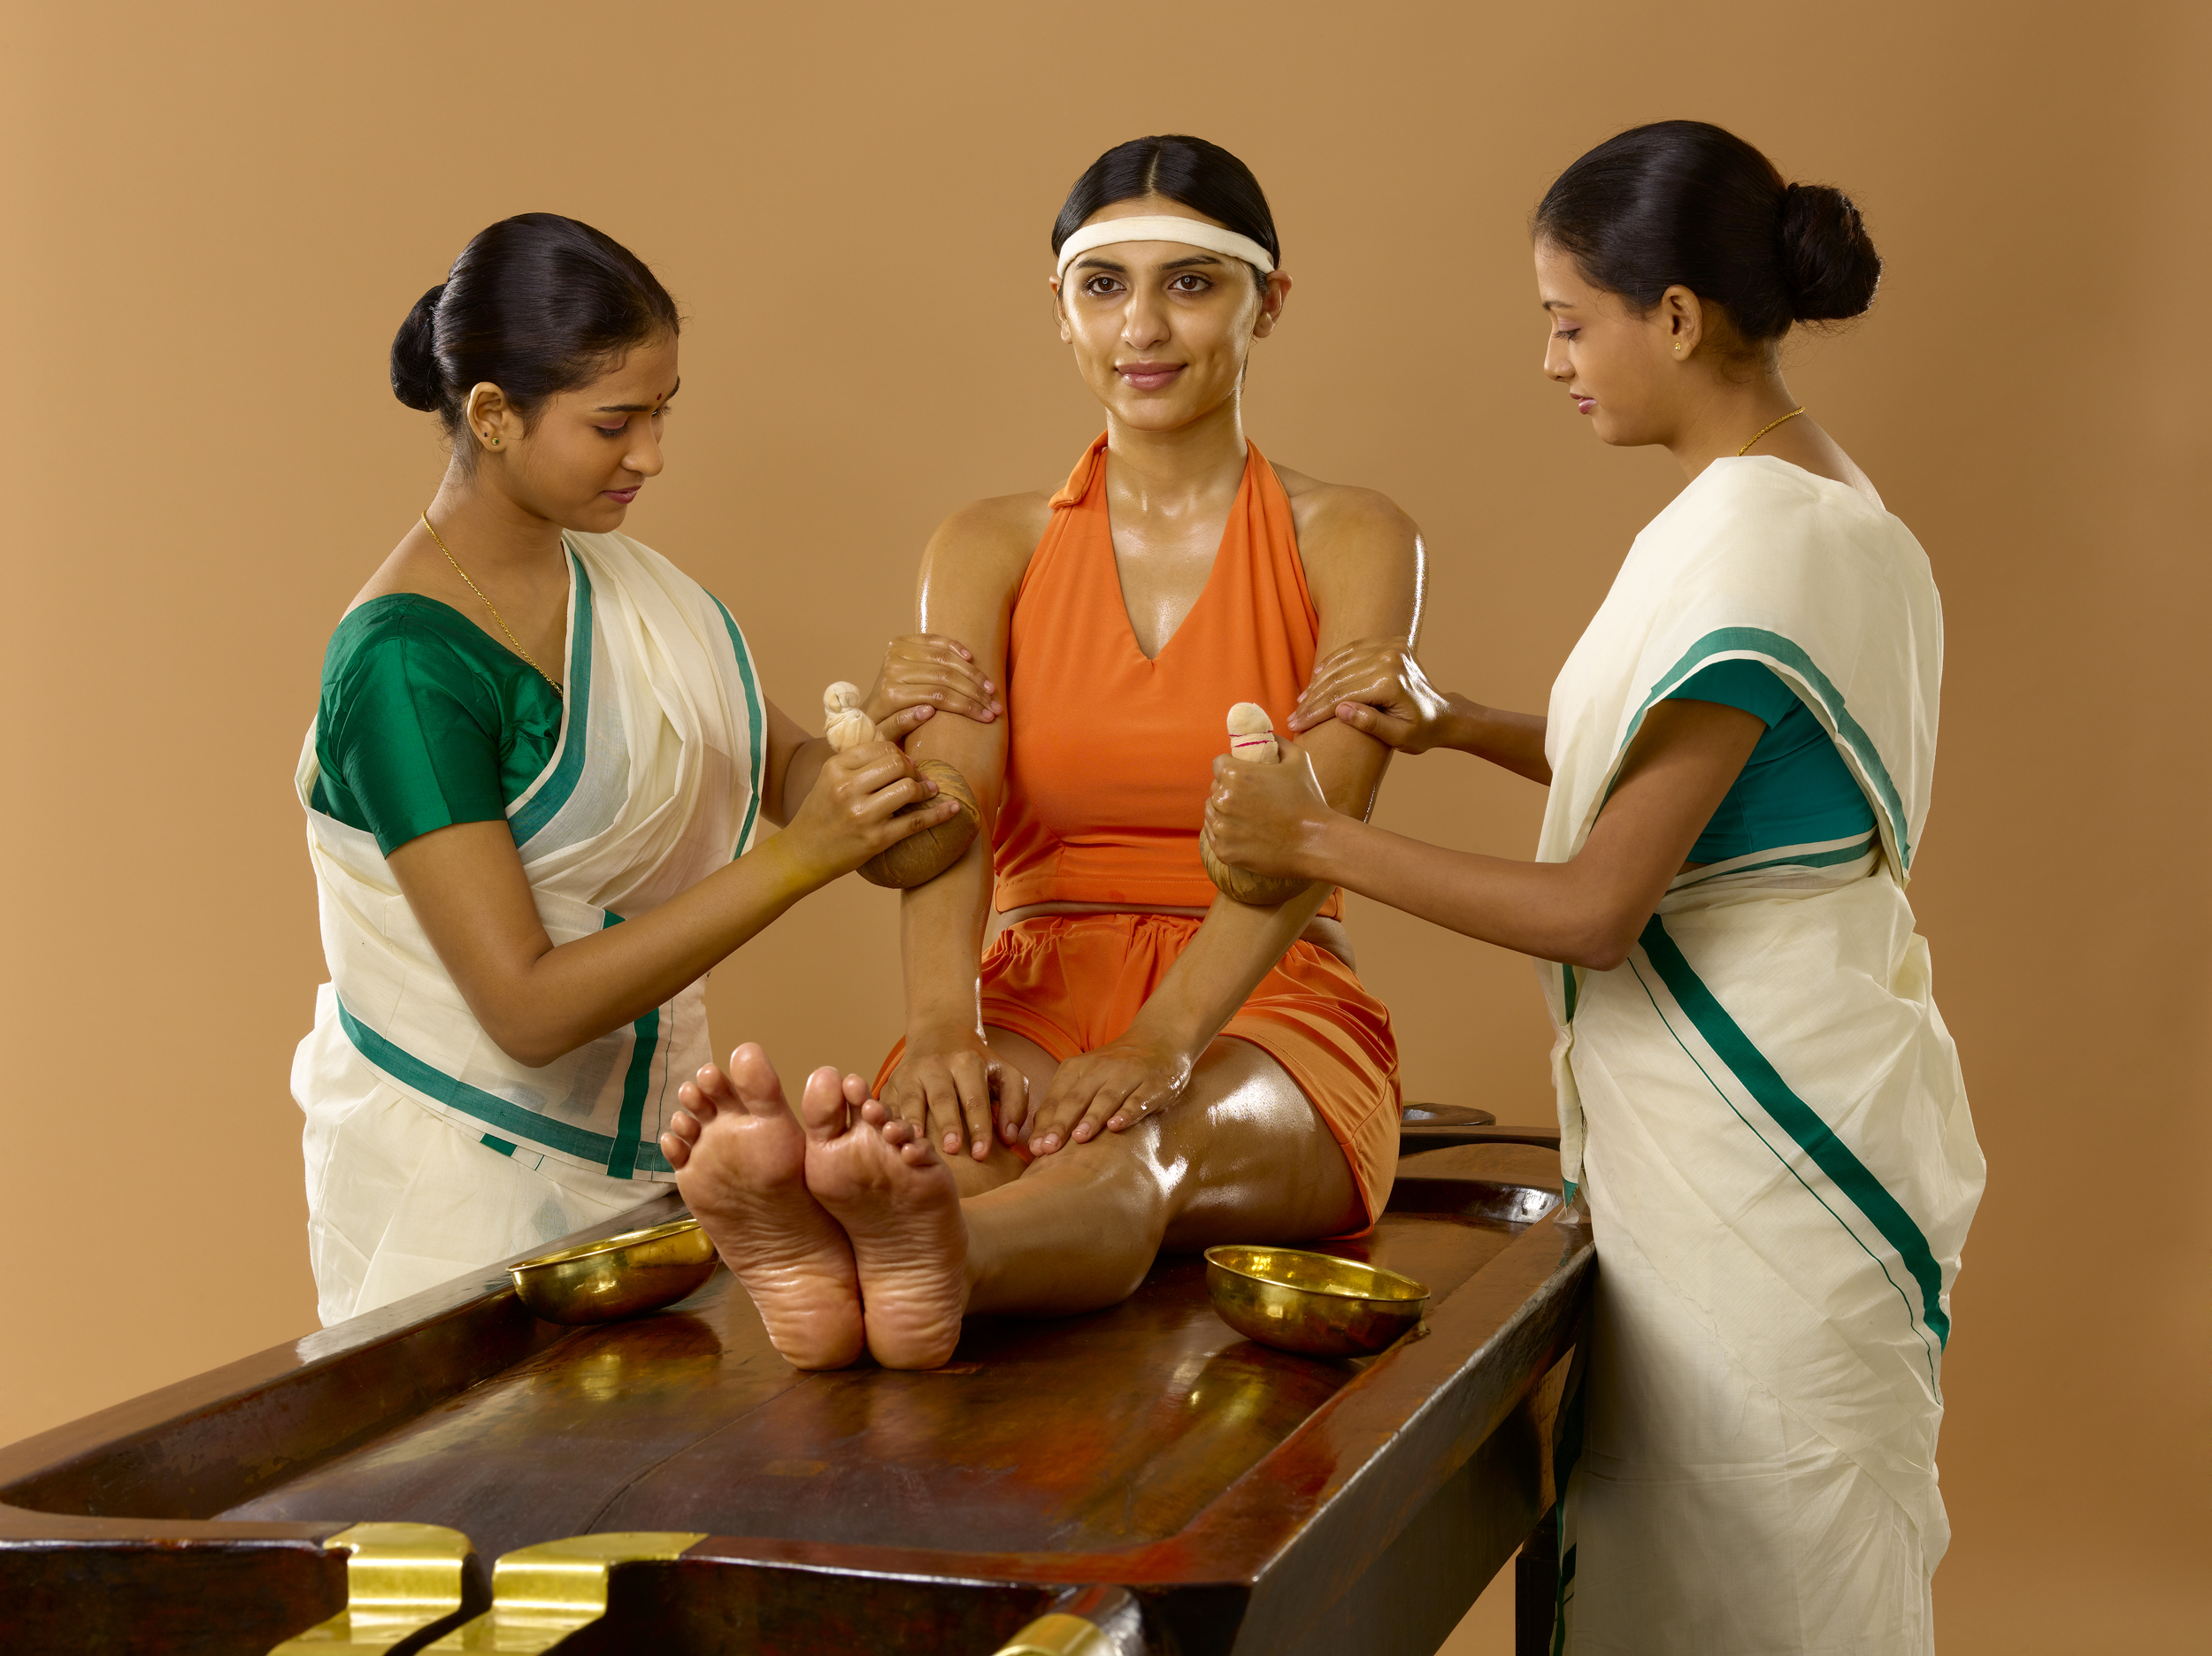 worlds ayurveda tourism essay Medical tourism in kerala kerala is already marketed as a health destination mainly for its ayurveda packages medical tourism is marketed along world-class.